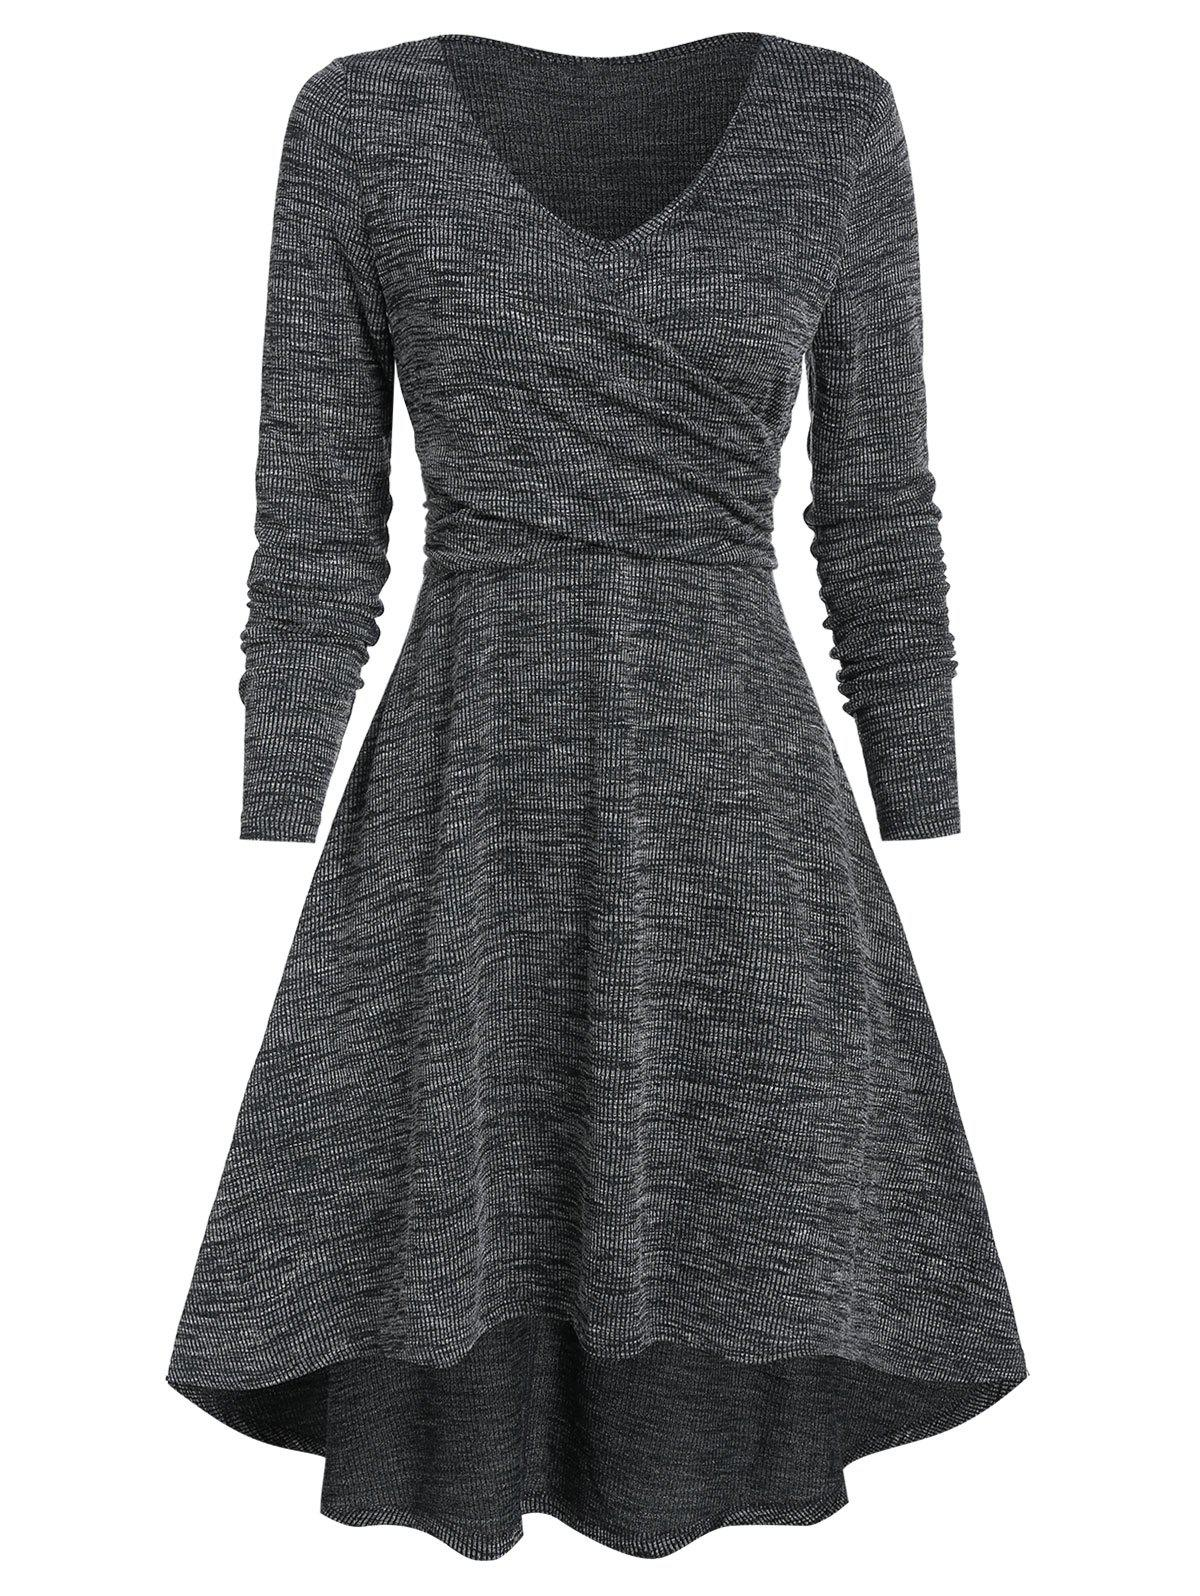 Shop Heathered V Neck High Low Dress